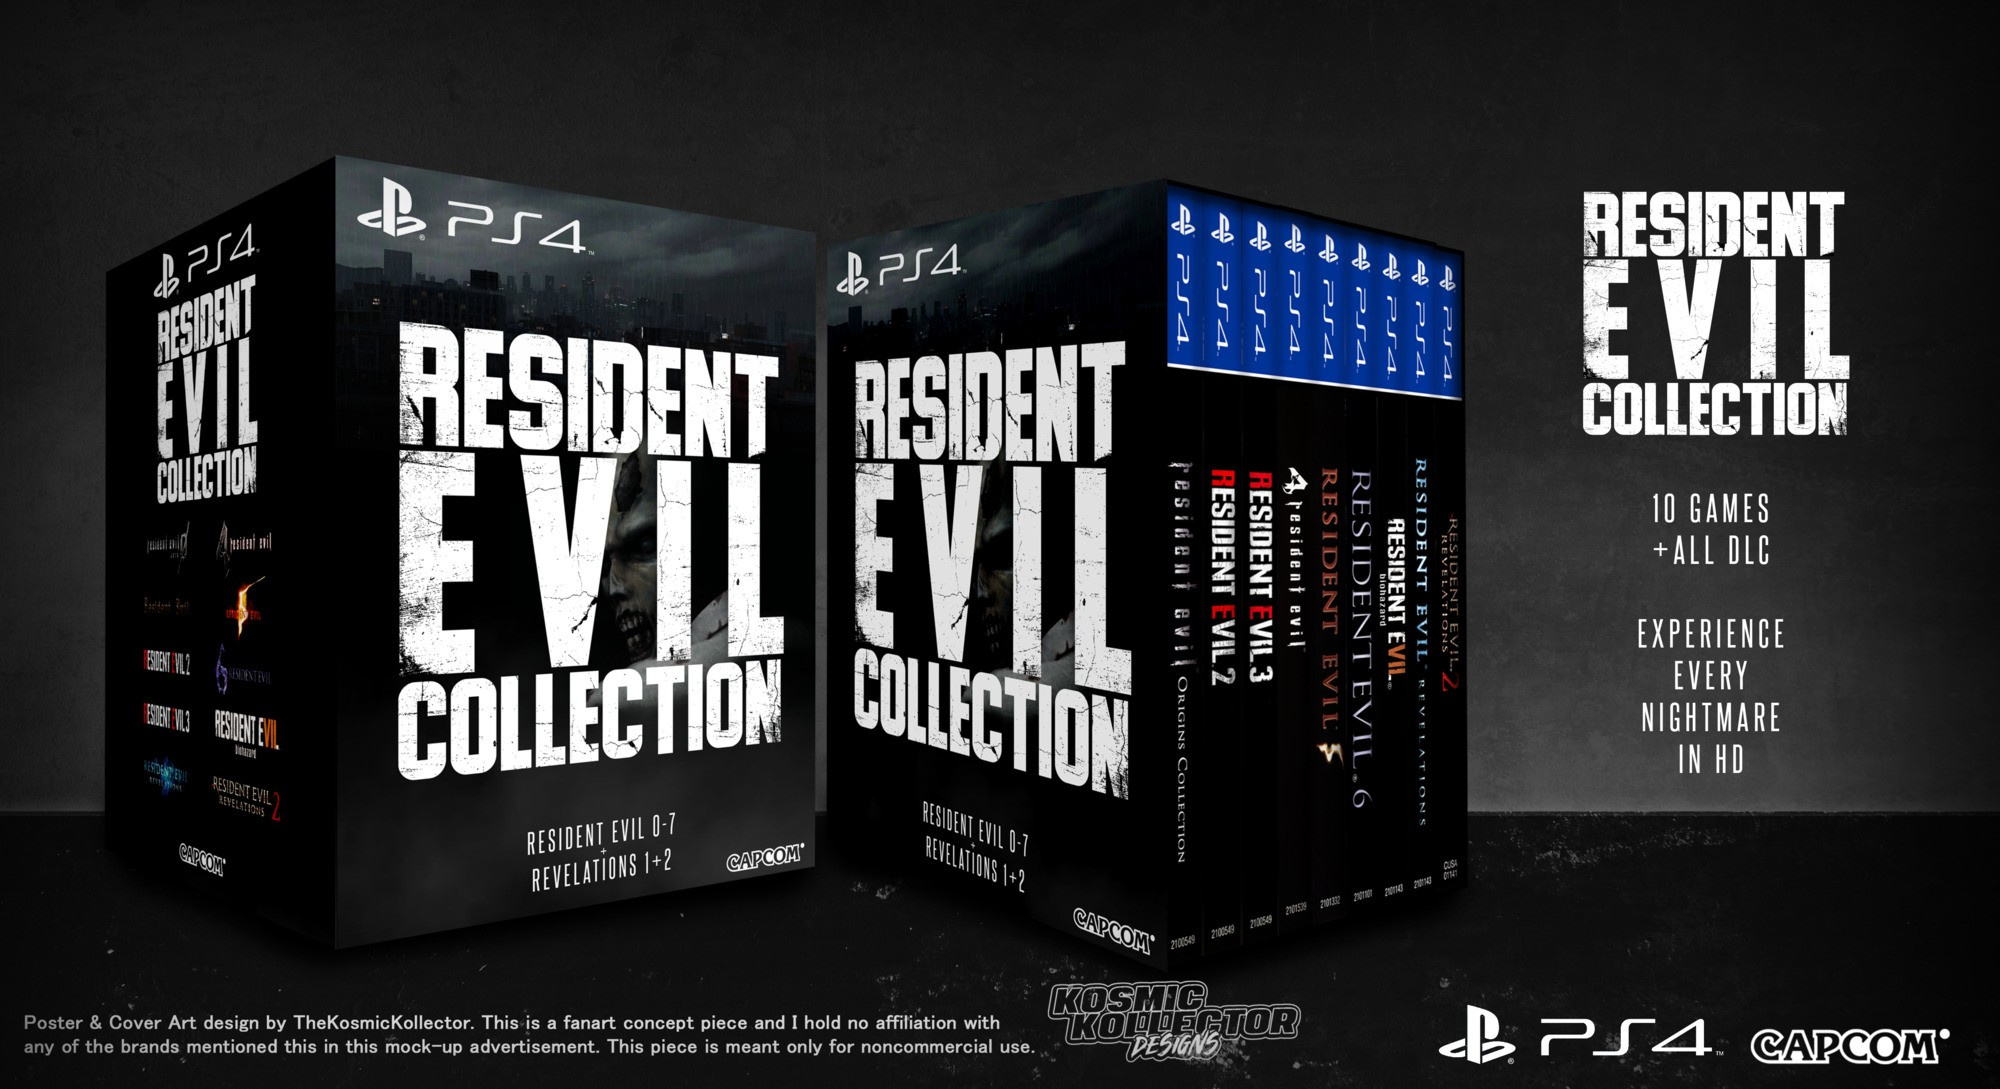 Capcom Should Consider Making This Resident Evil Collection